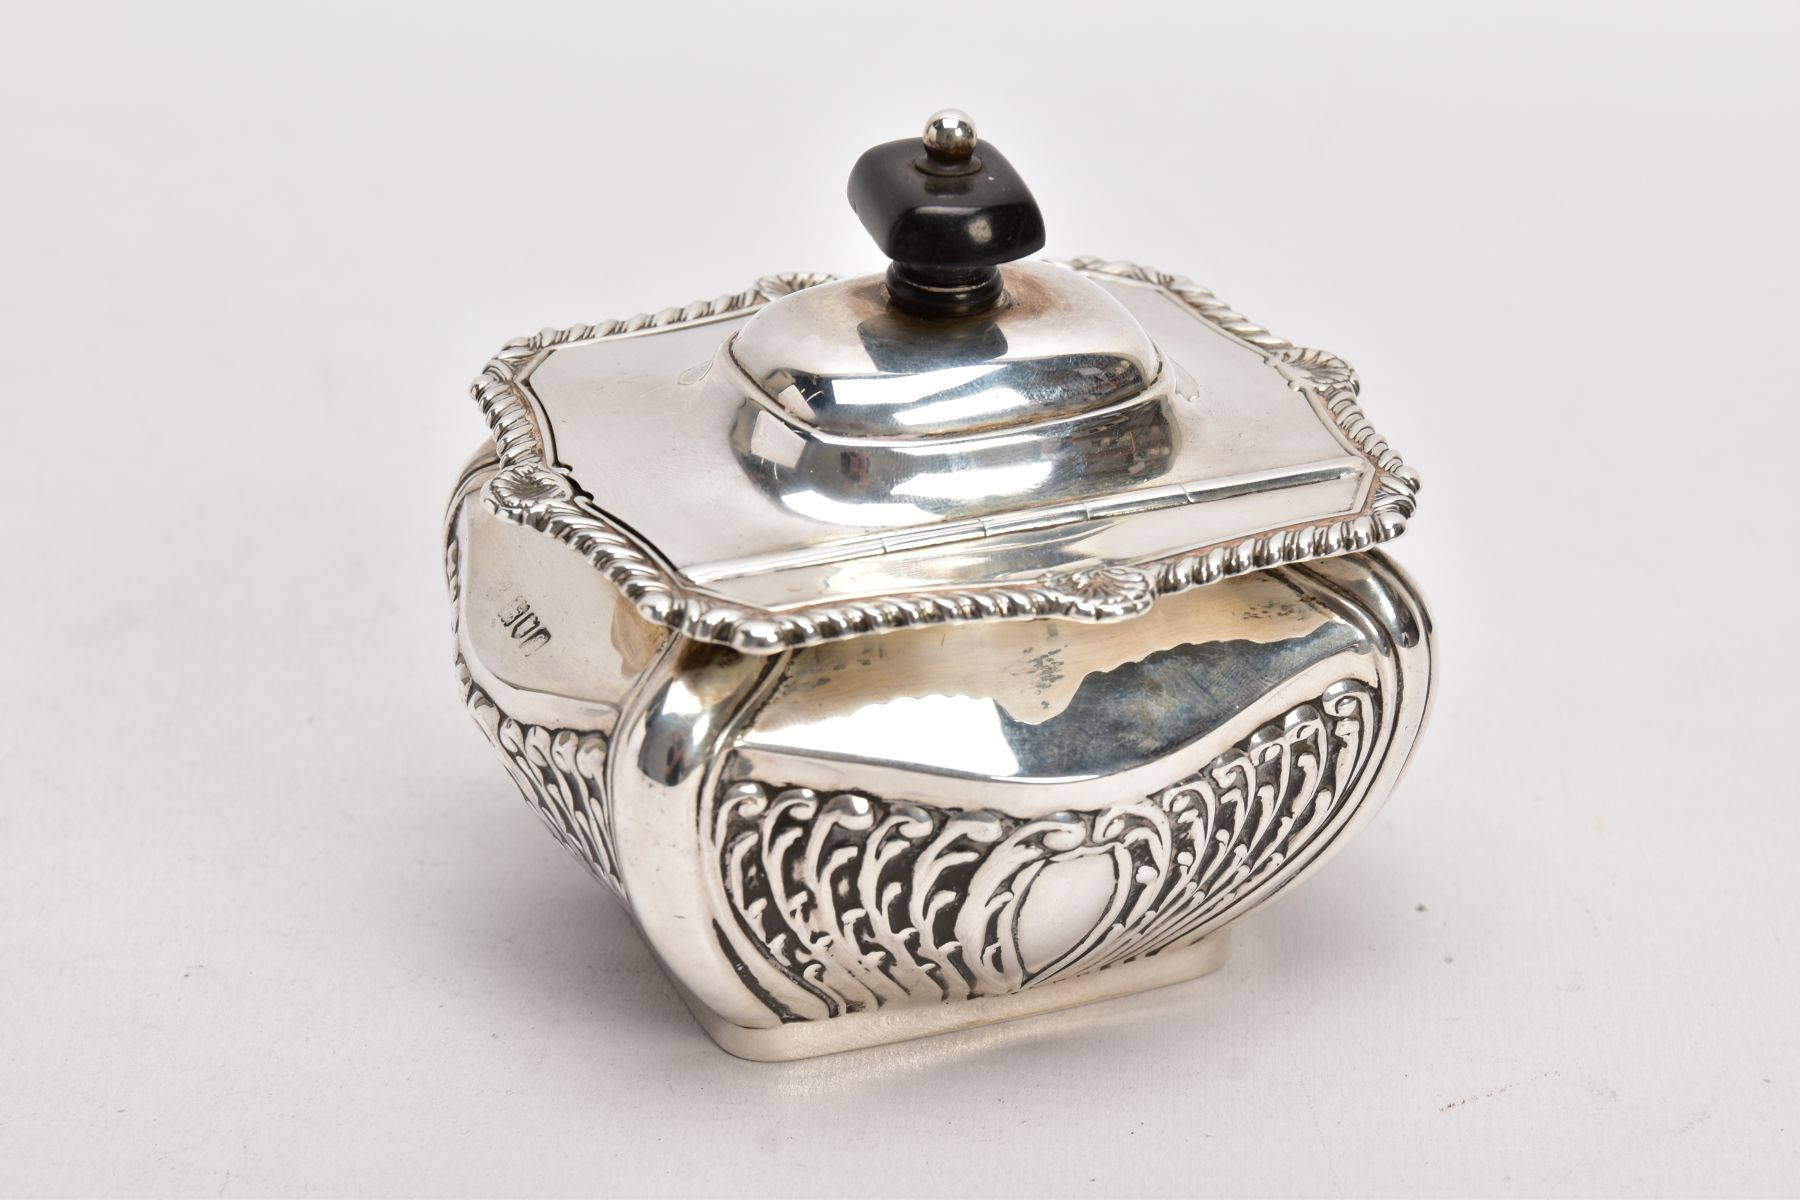 AN EDWARDIAN SILVER TEA CADDY, bomb shaped sucrier with hinged cover, gadrooned and shell cast - Image 2 of 6